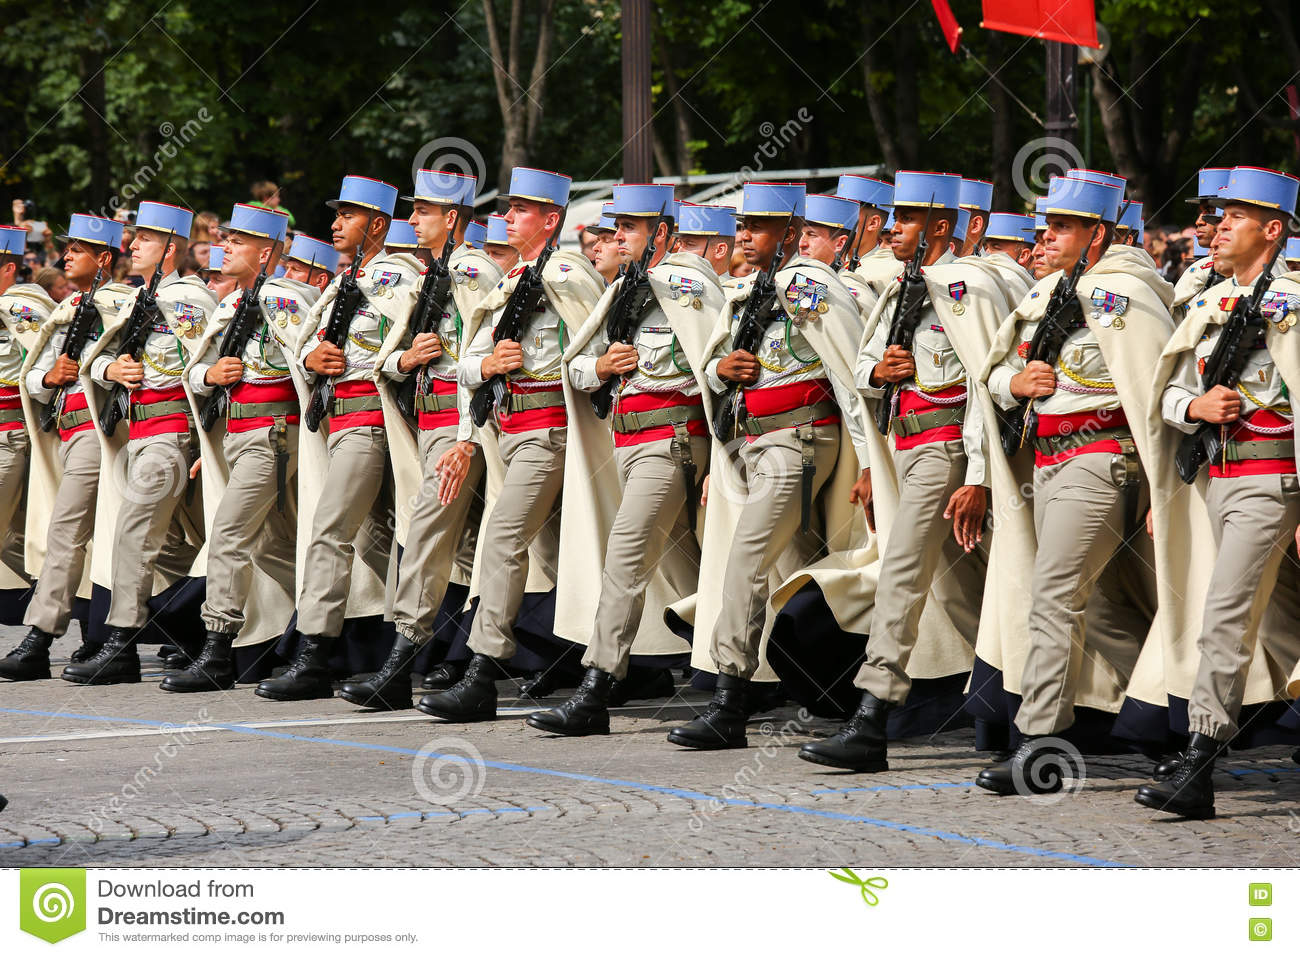 Military parade (Defile) during the ceremonial of french national day, Champs Elysee avenue.